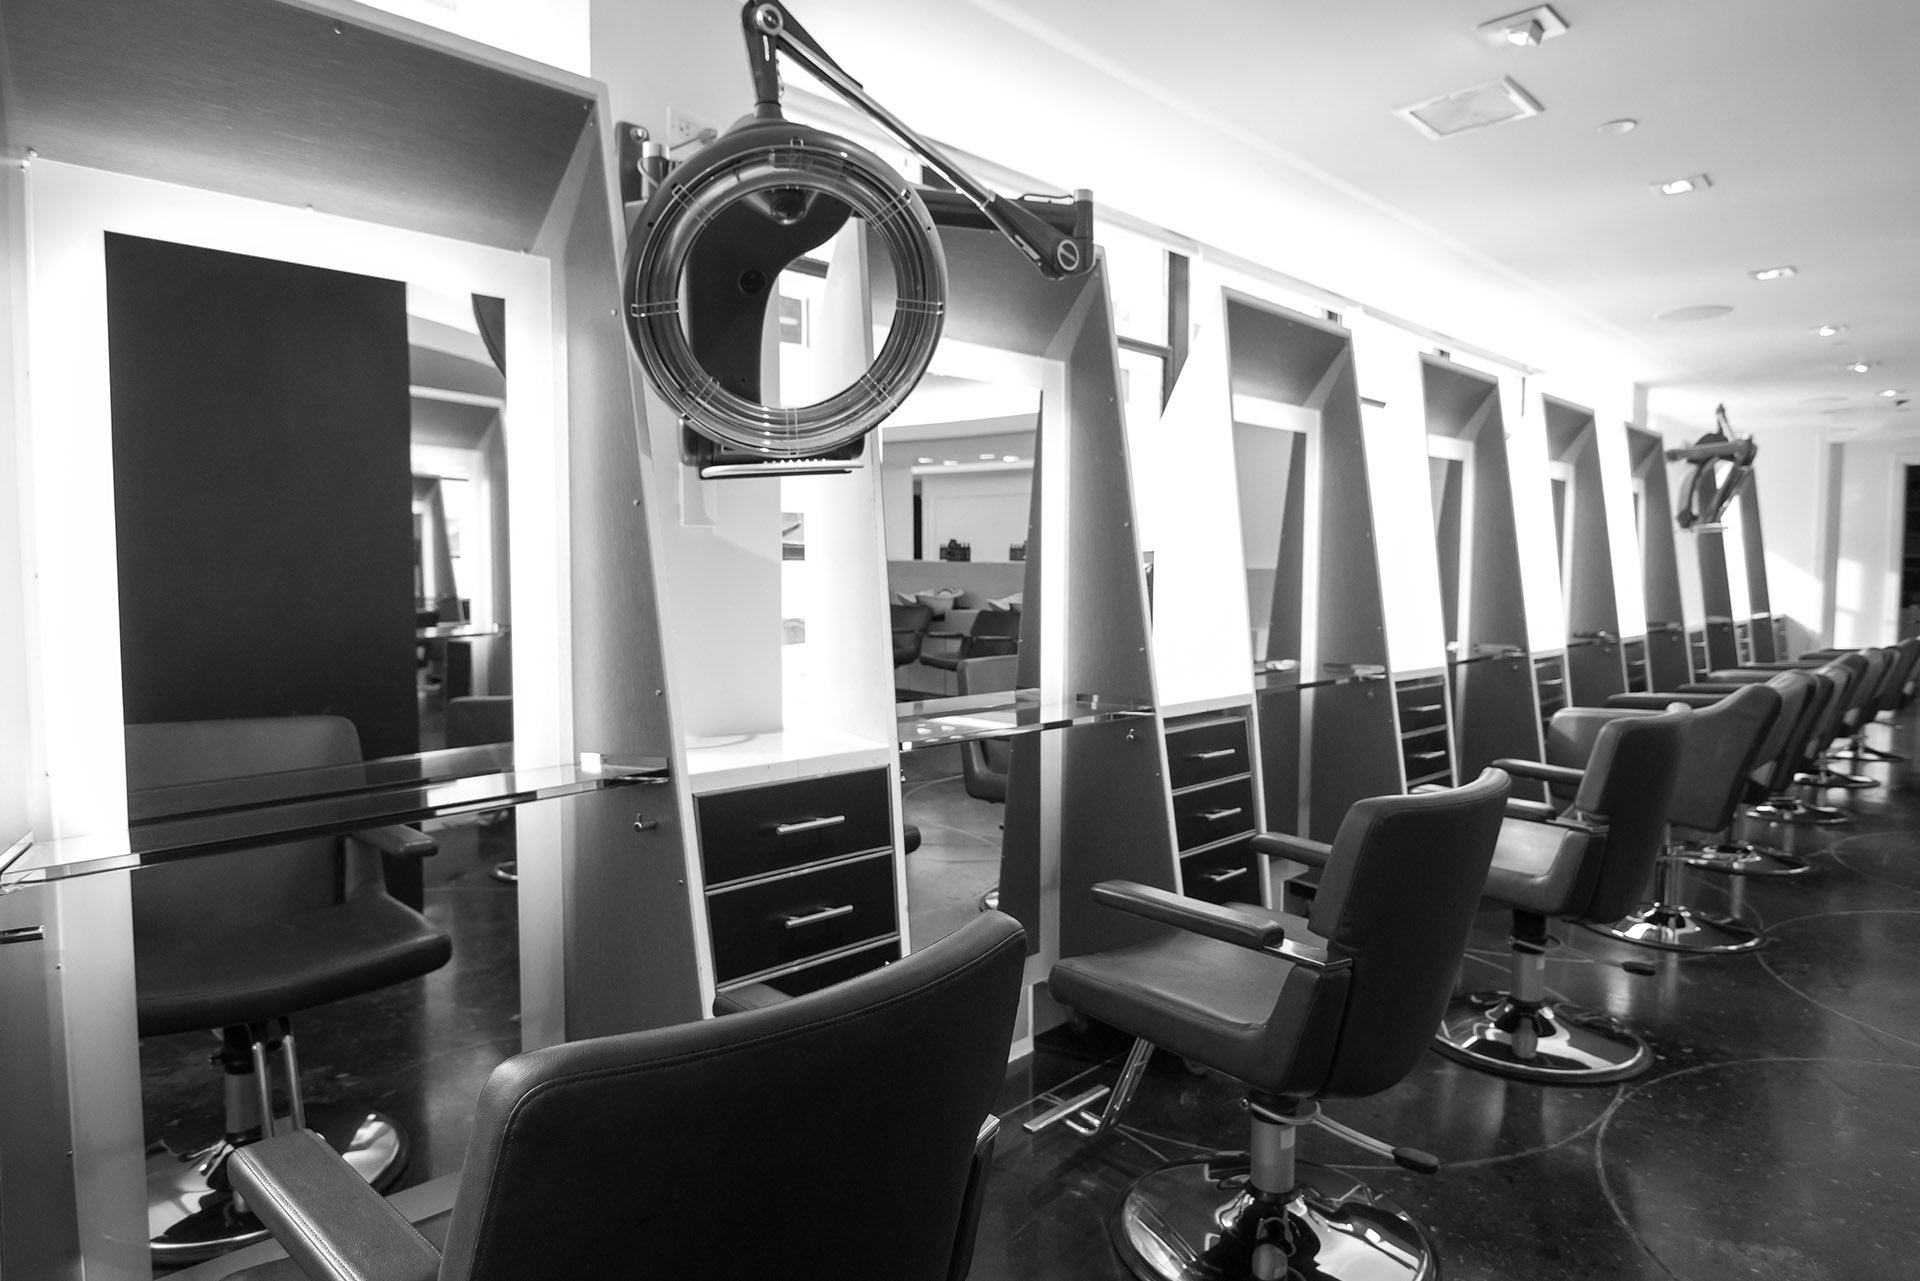 Rita Hazan Visit Our New York Salon An intimate space to create hair magic in the heart of darlinghurst. rita hazan visit our new york salon